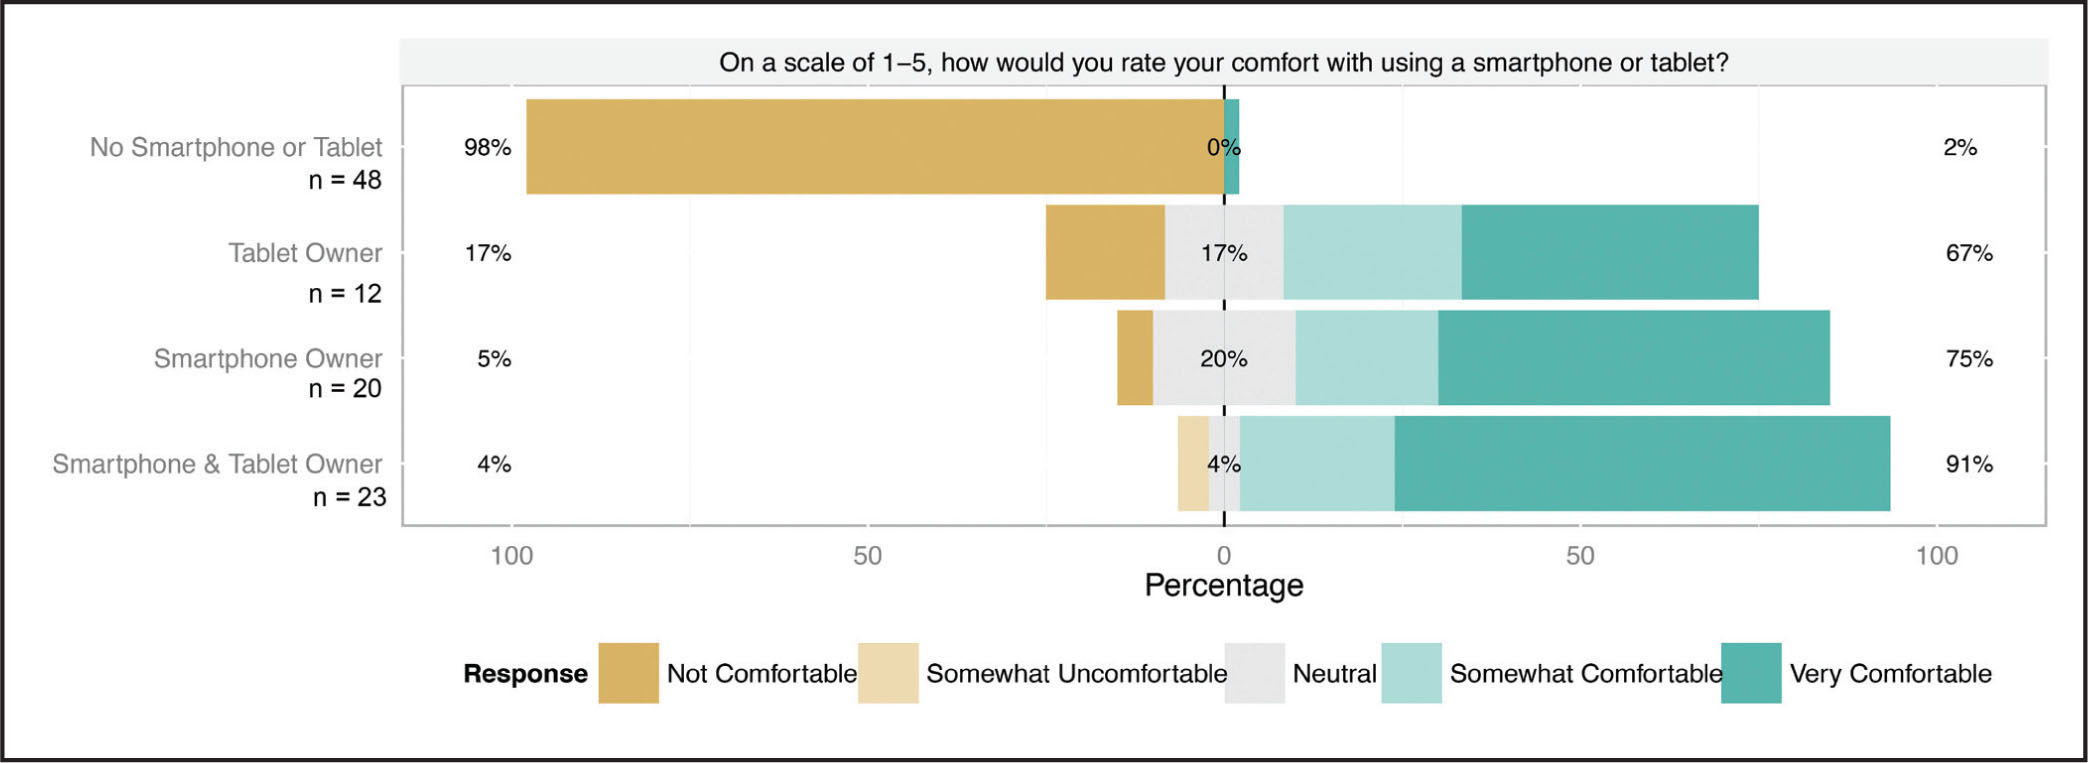 Patient comfort using a smartphone or tablet (n = 103). Patients were asked to rank their comfort using a smartphone or tablet on a five-point Likert scale (1 = not comfortable, 5 = very comfortable).